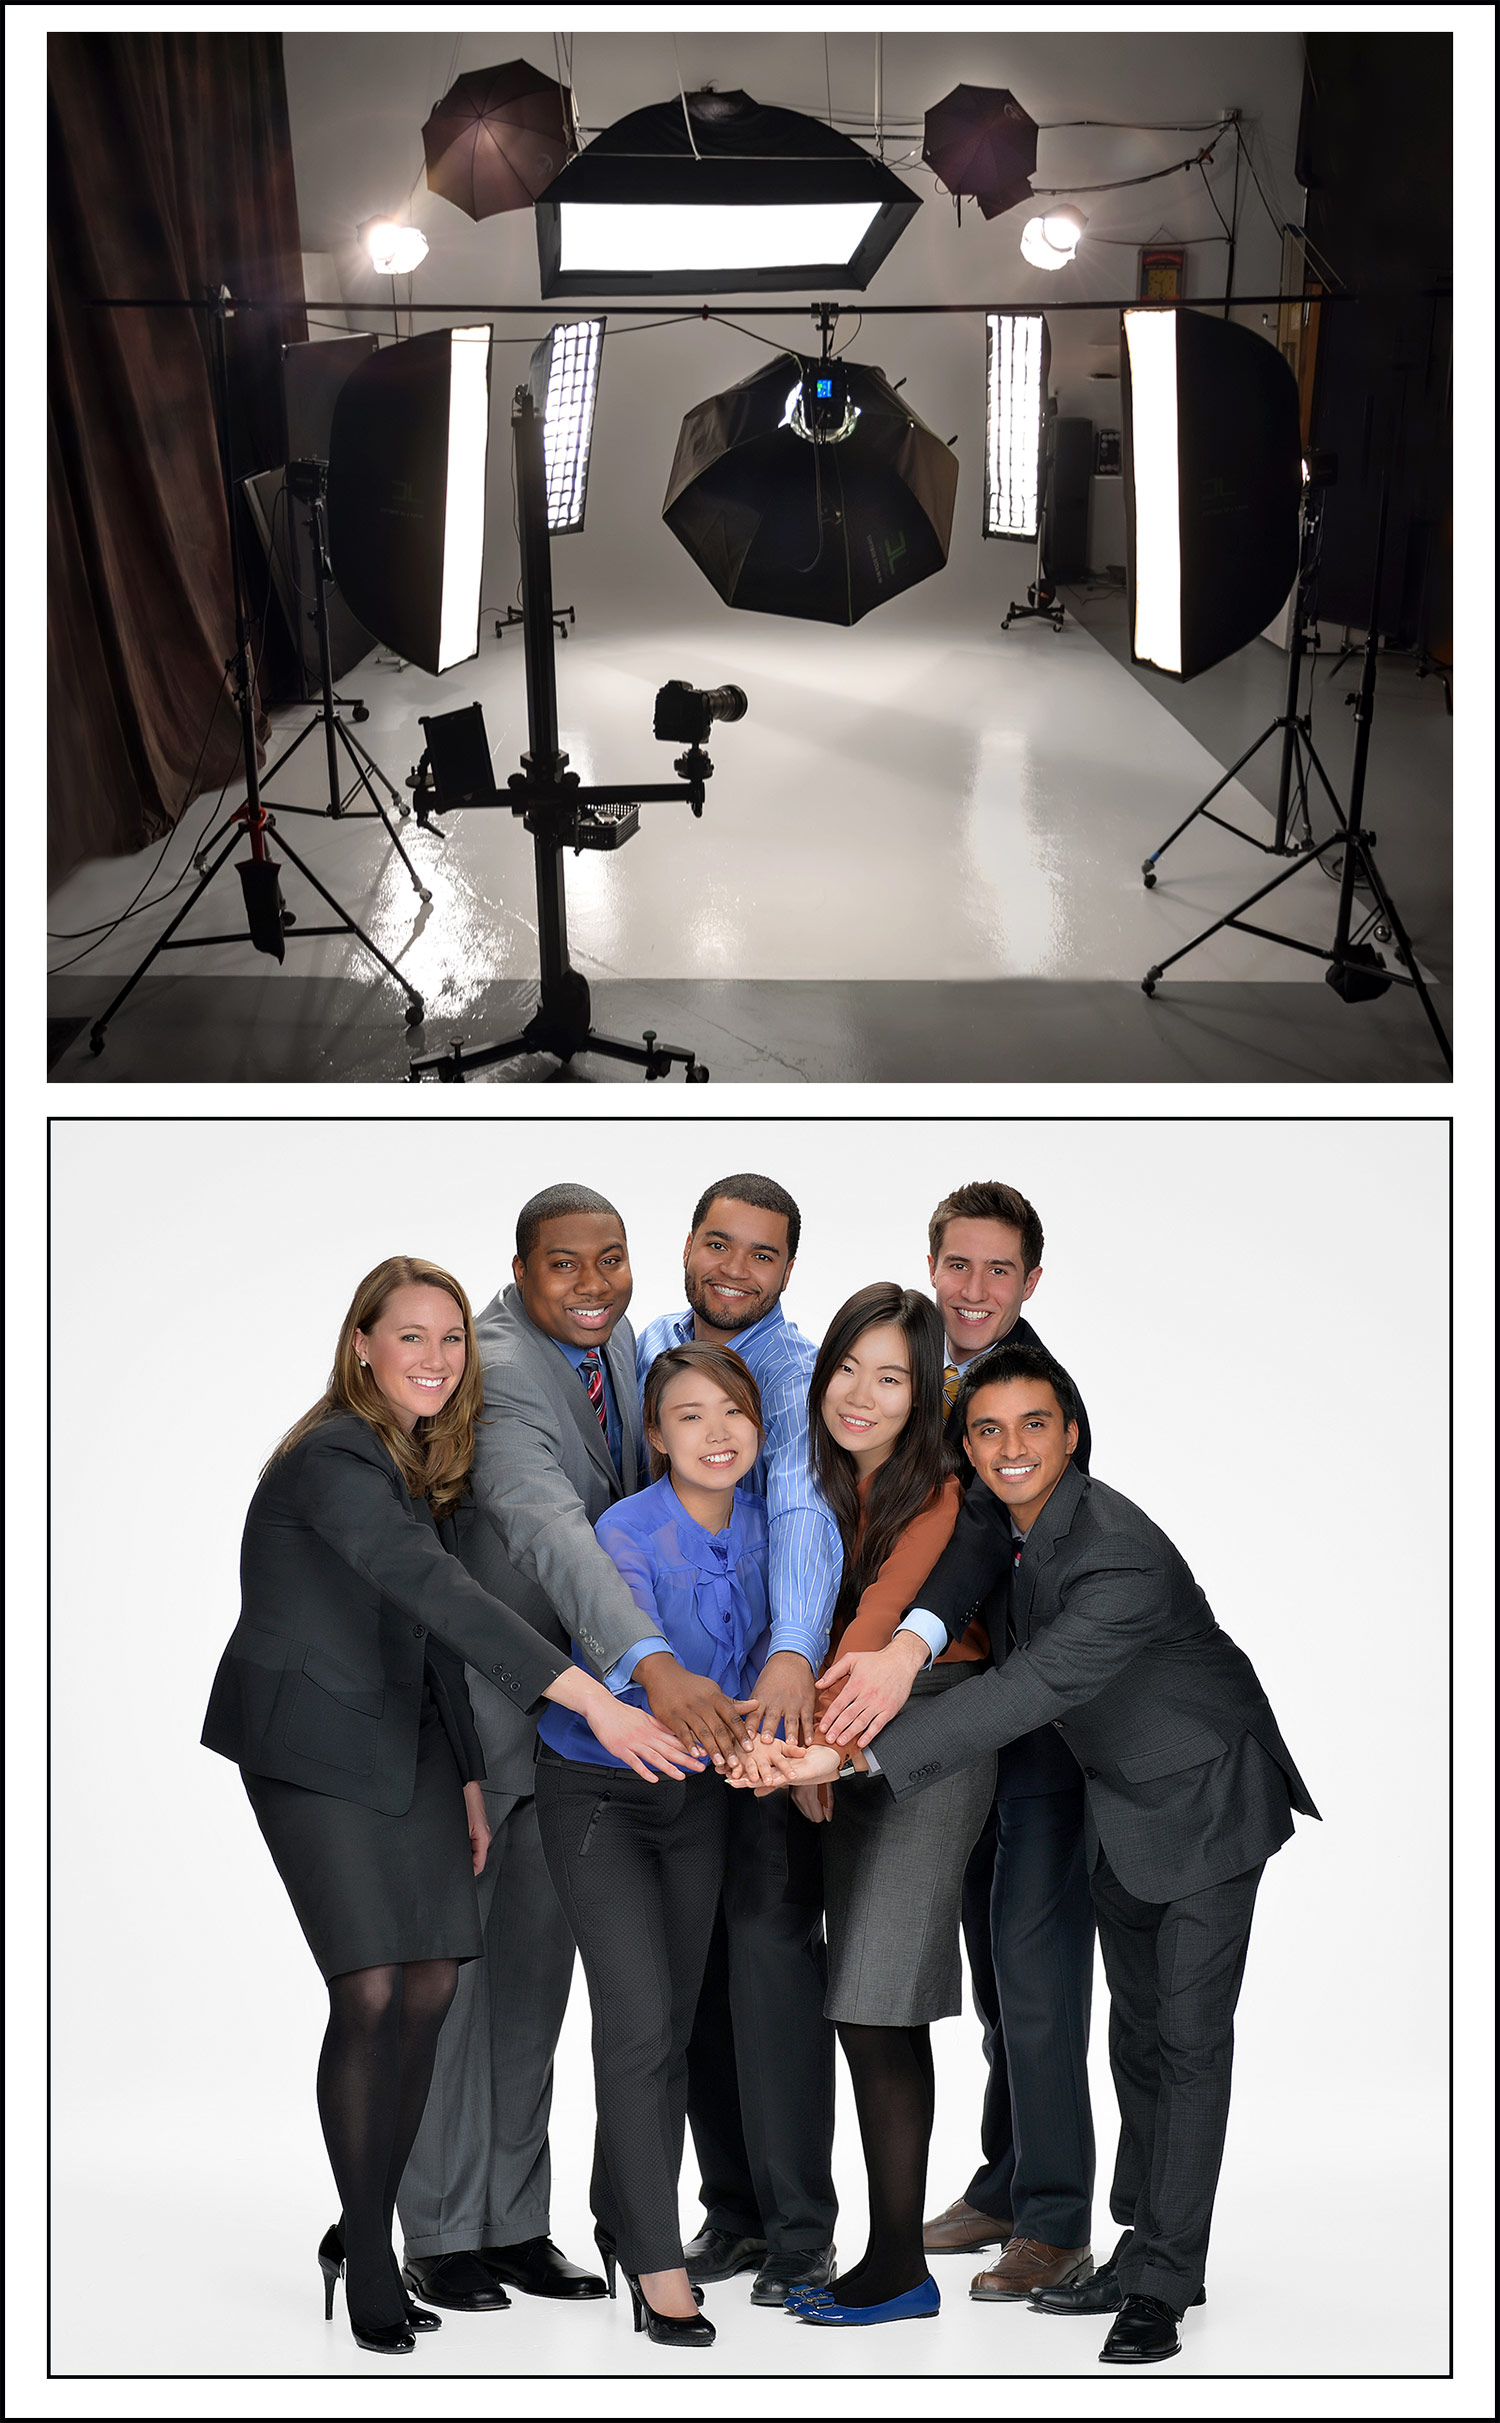 group photography for business sales